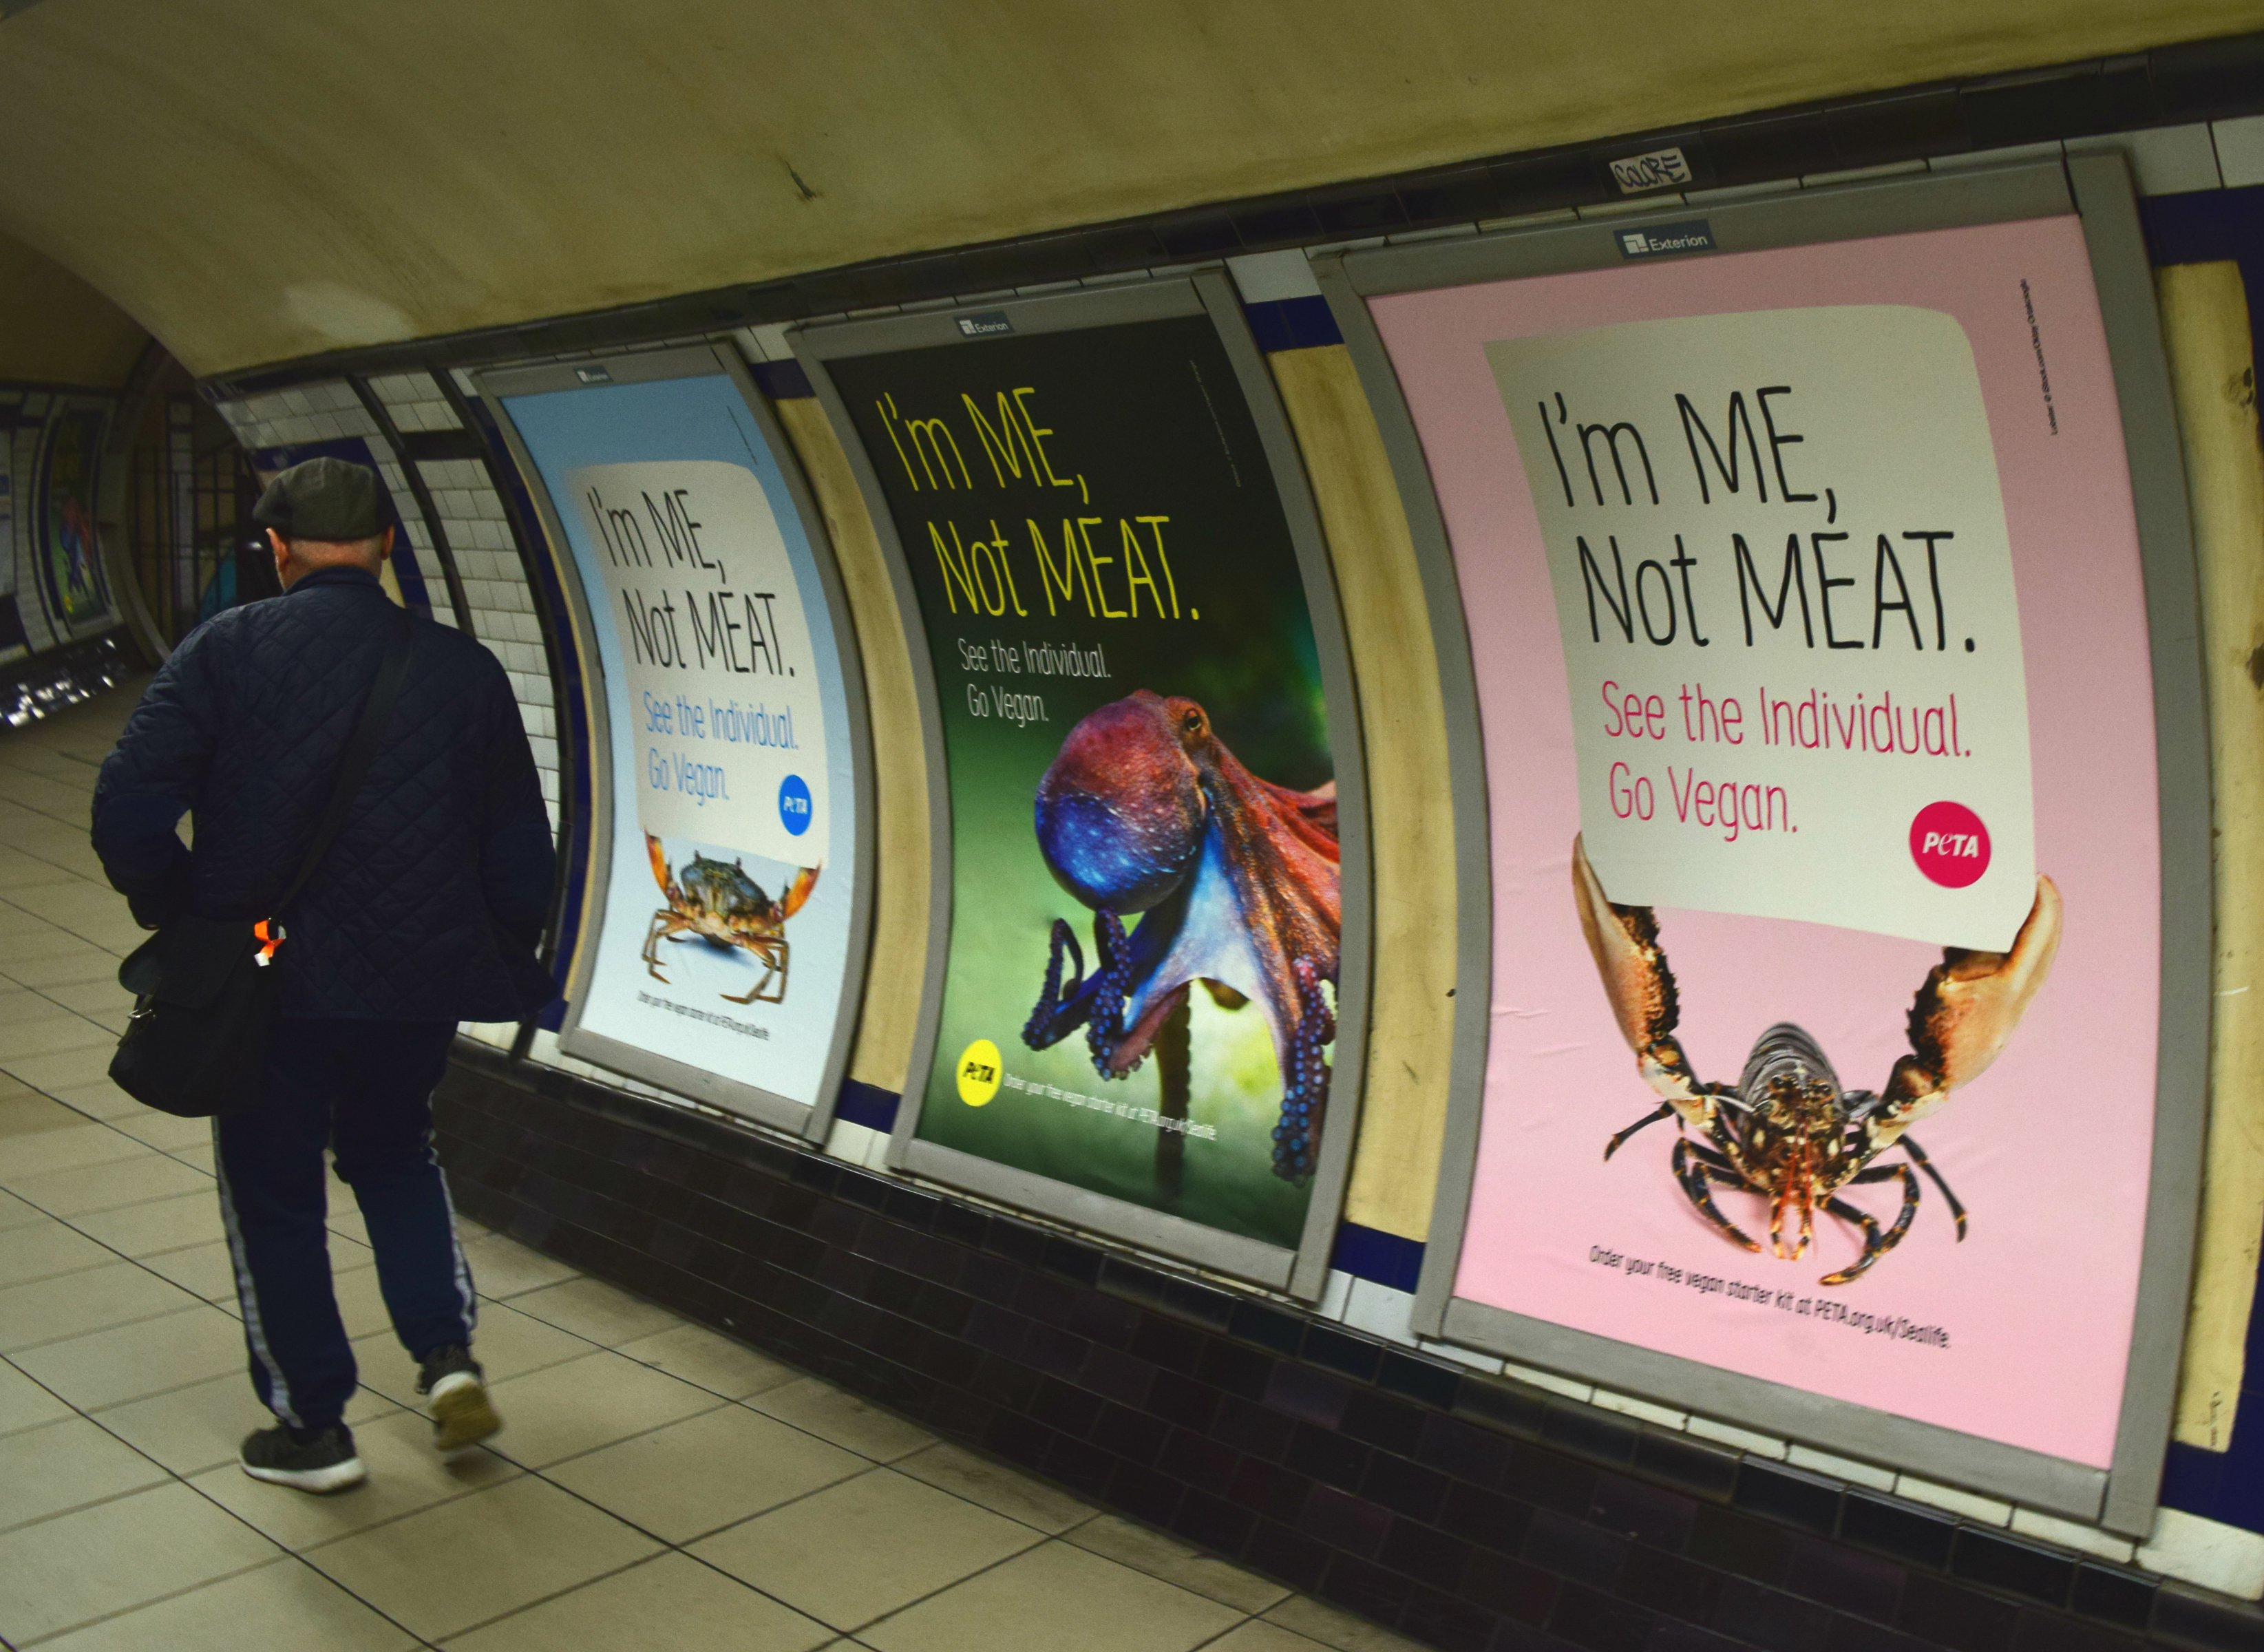 peta clapham common posters